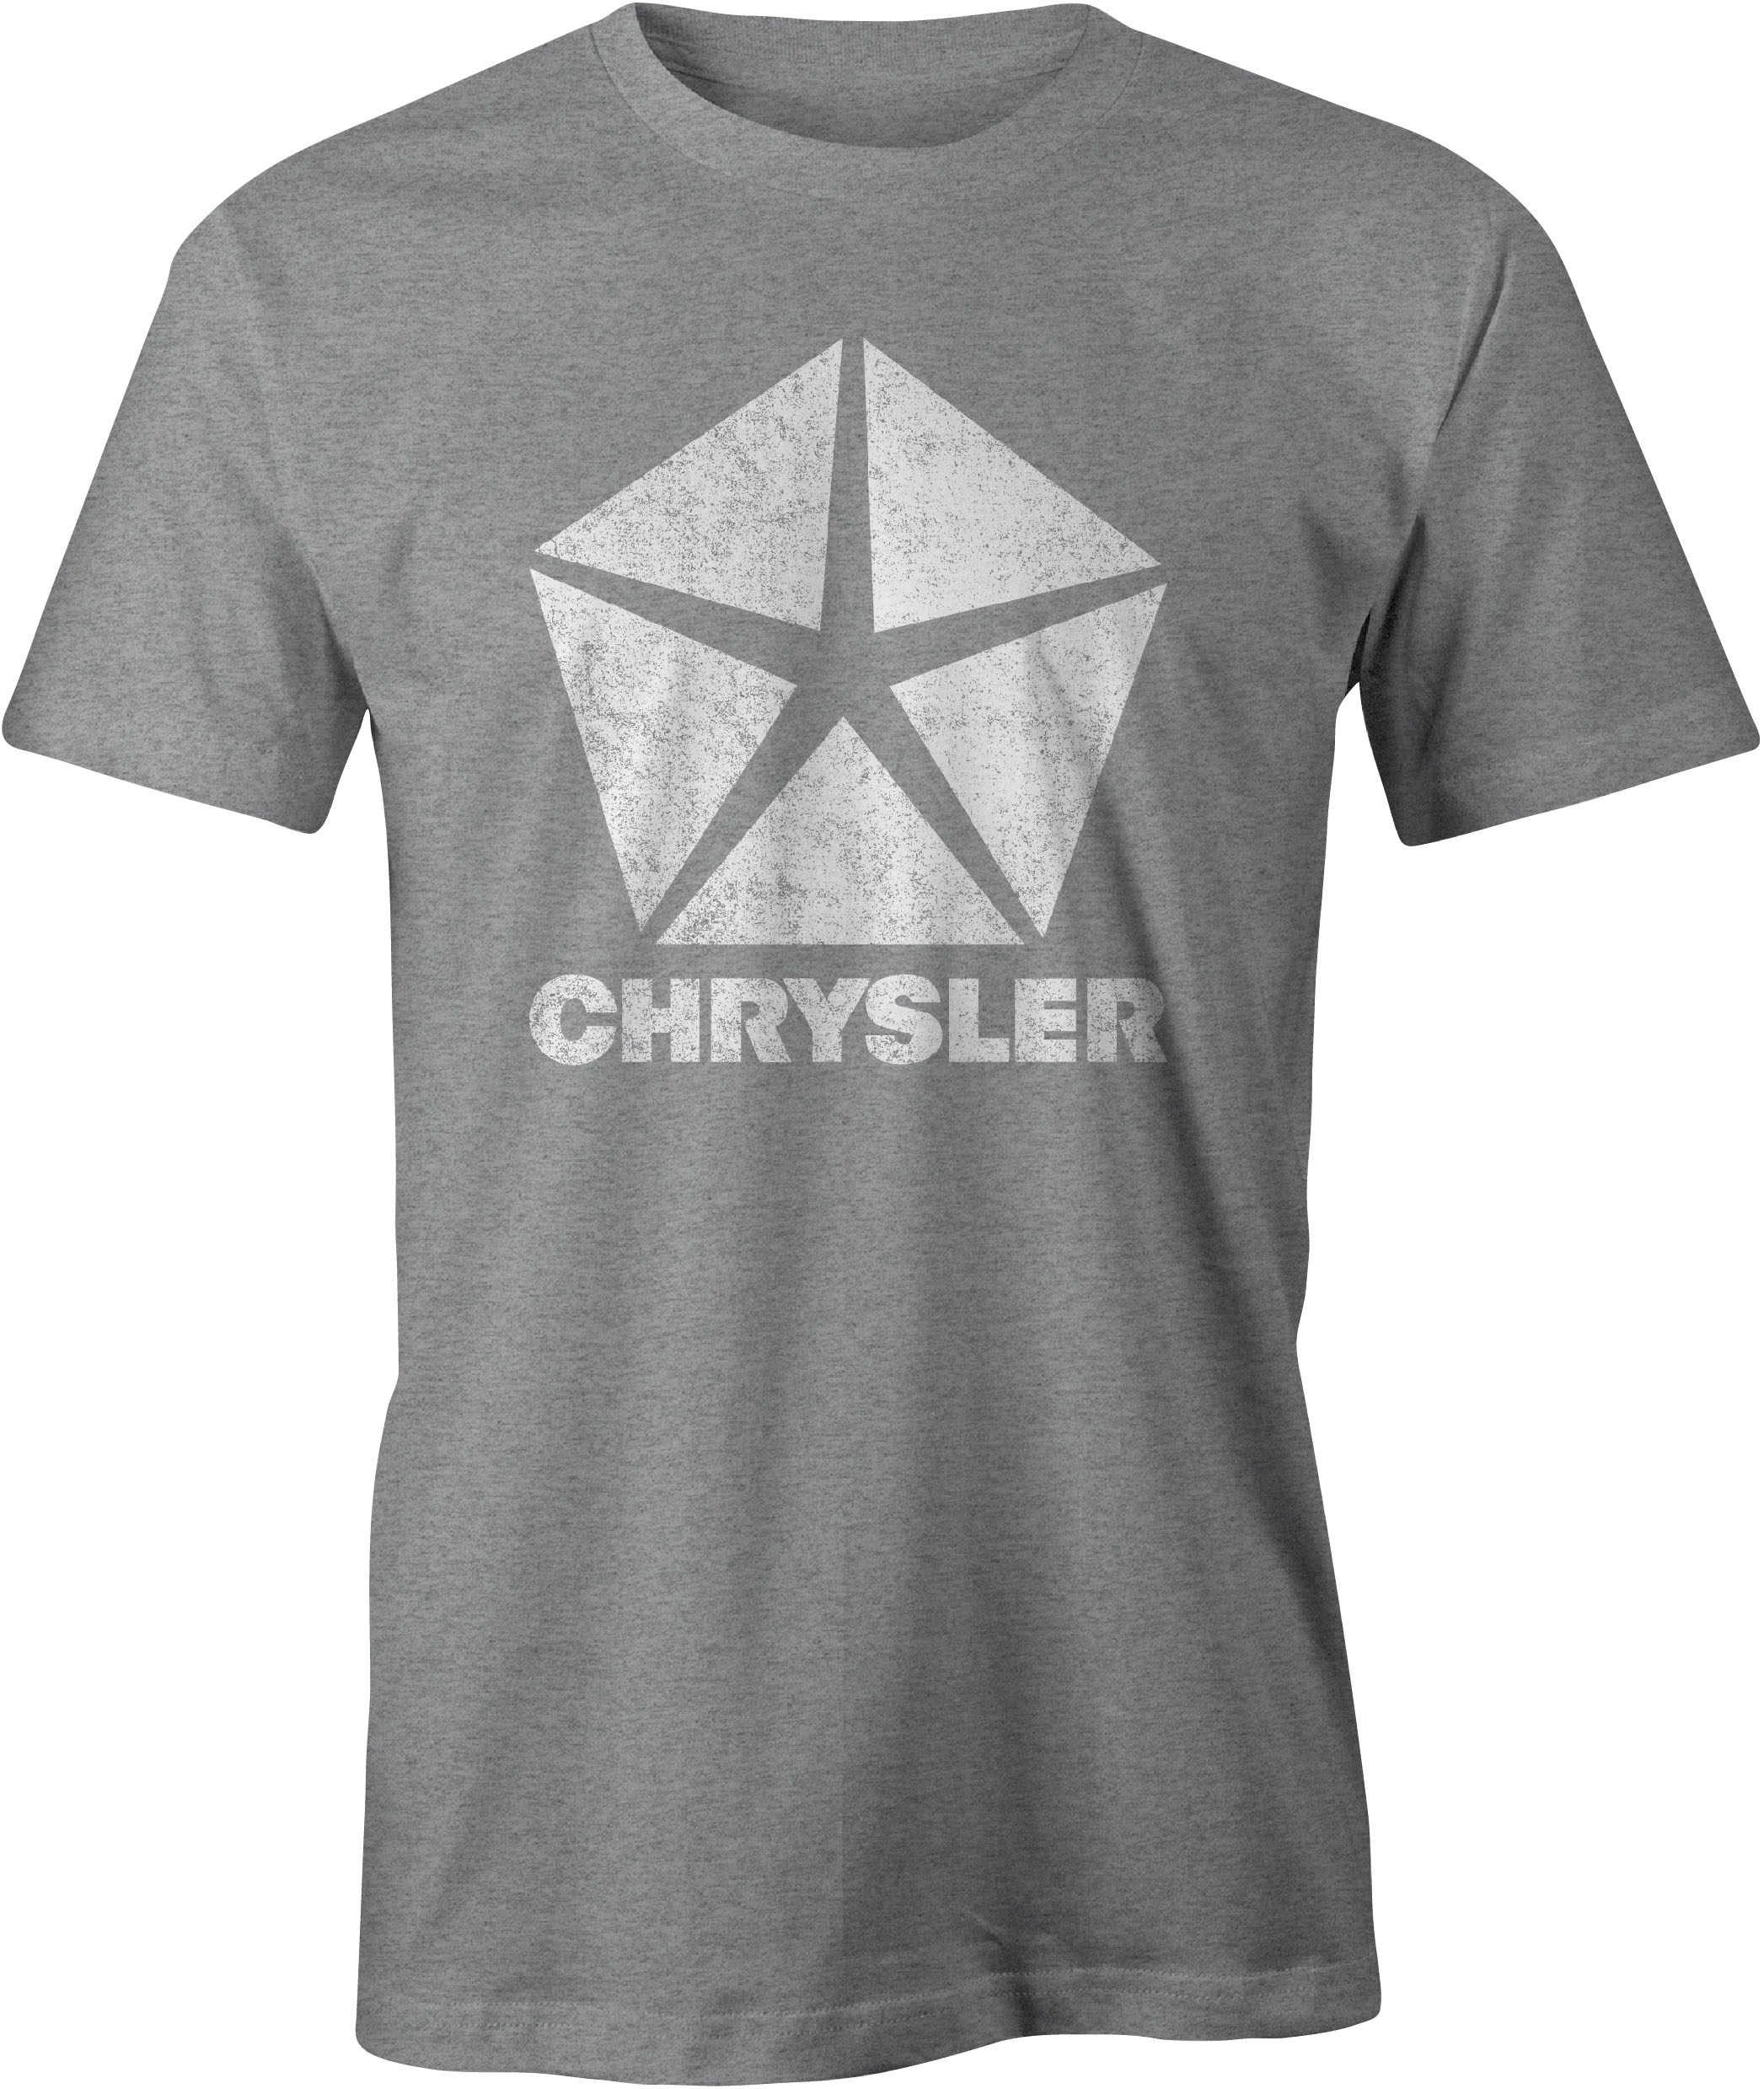 Chrysler Pentastar Logo T Shirt Sport Grey